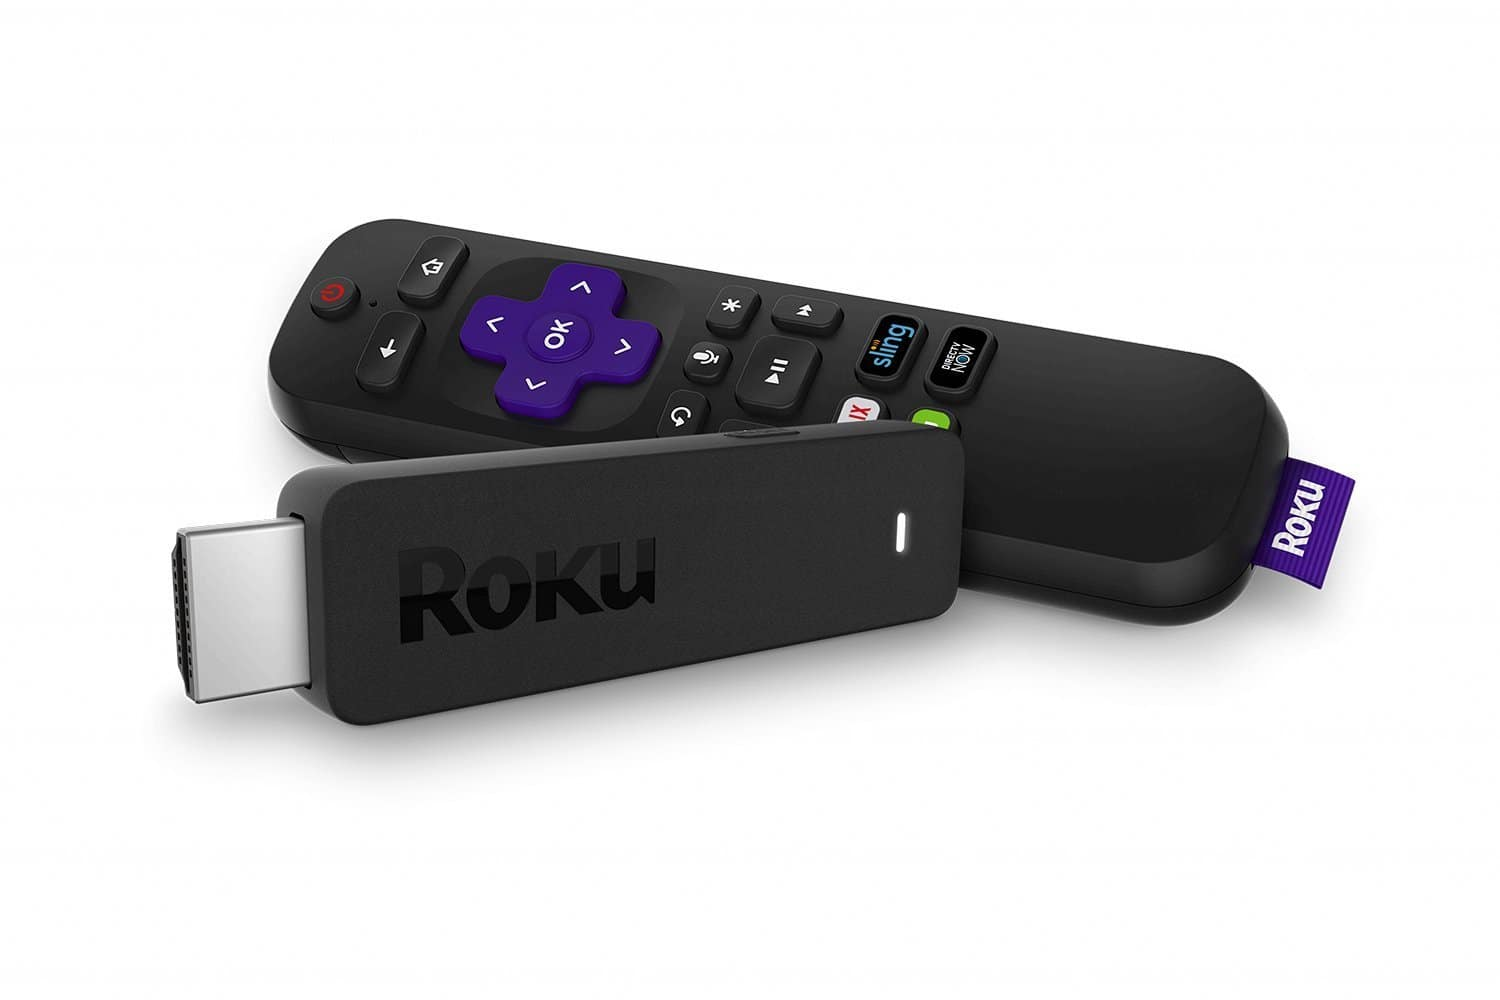 Roku Streaming Stick with TV power and volume (2017) $39.99